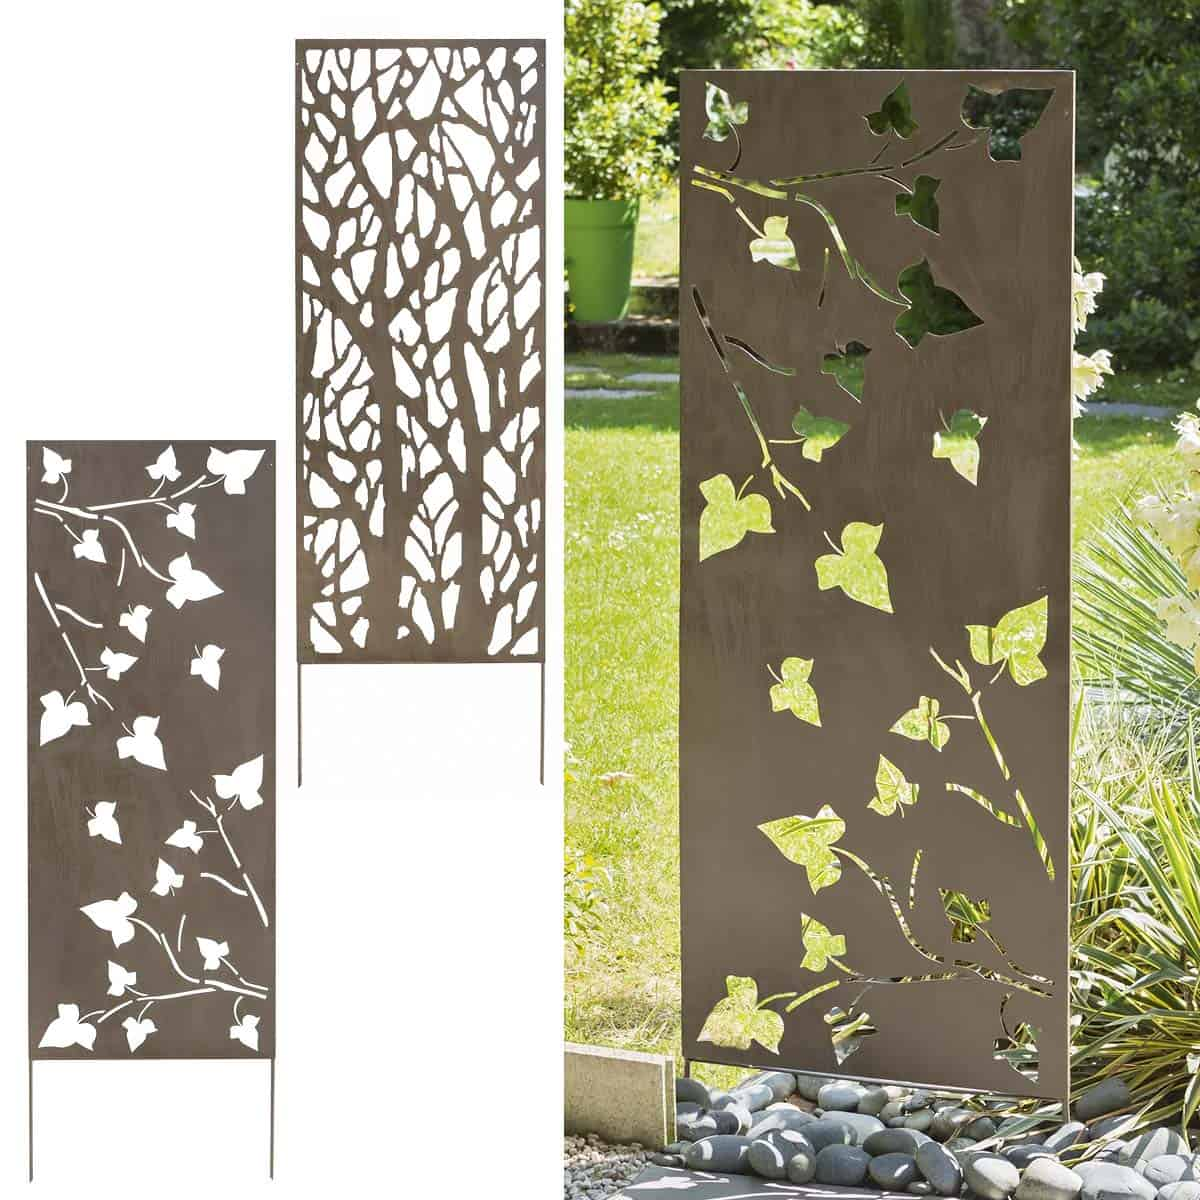 Decoration murale exterieur en metal - Panneau decoration murale design ...